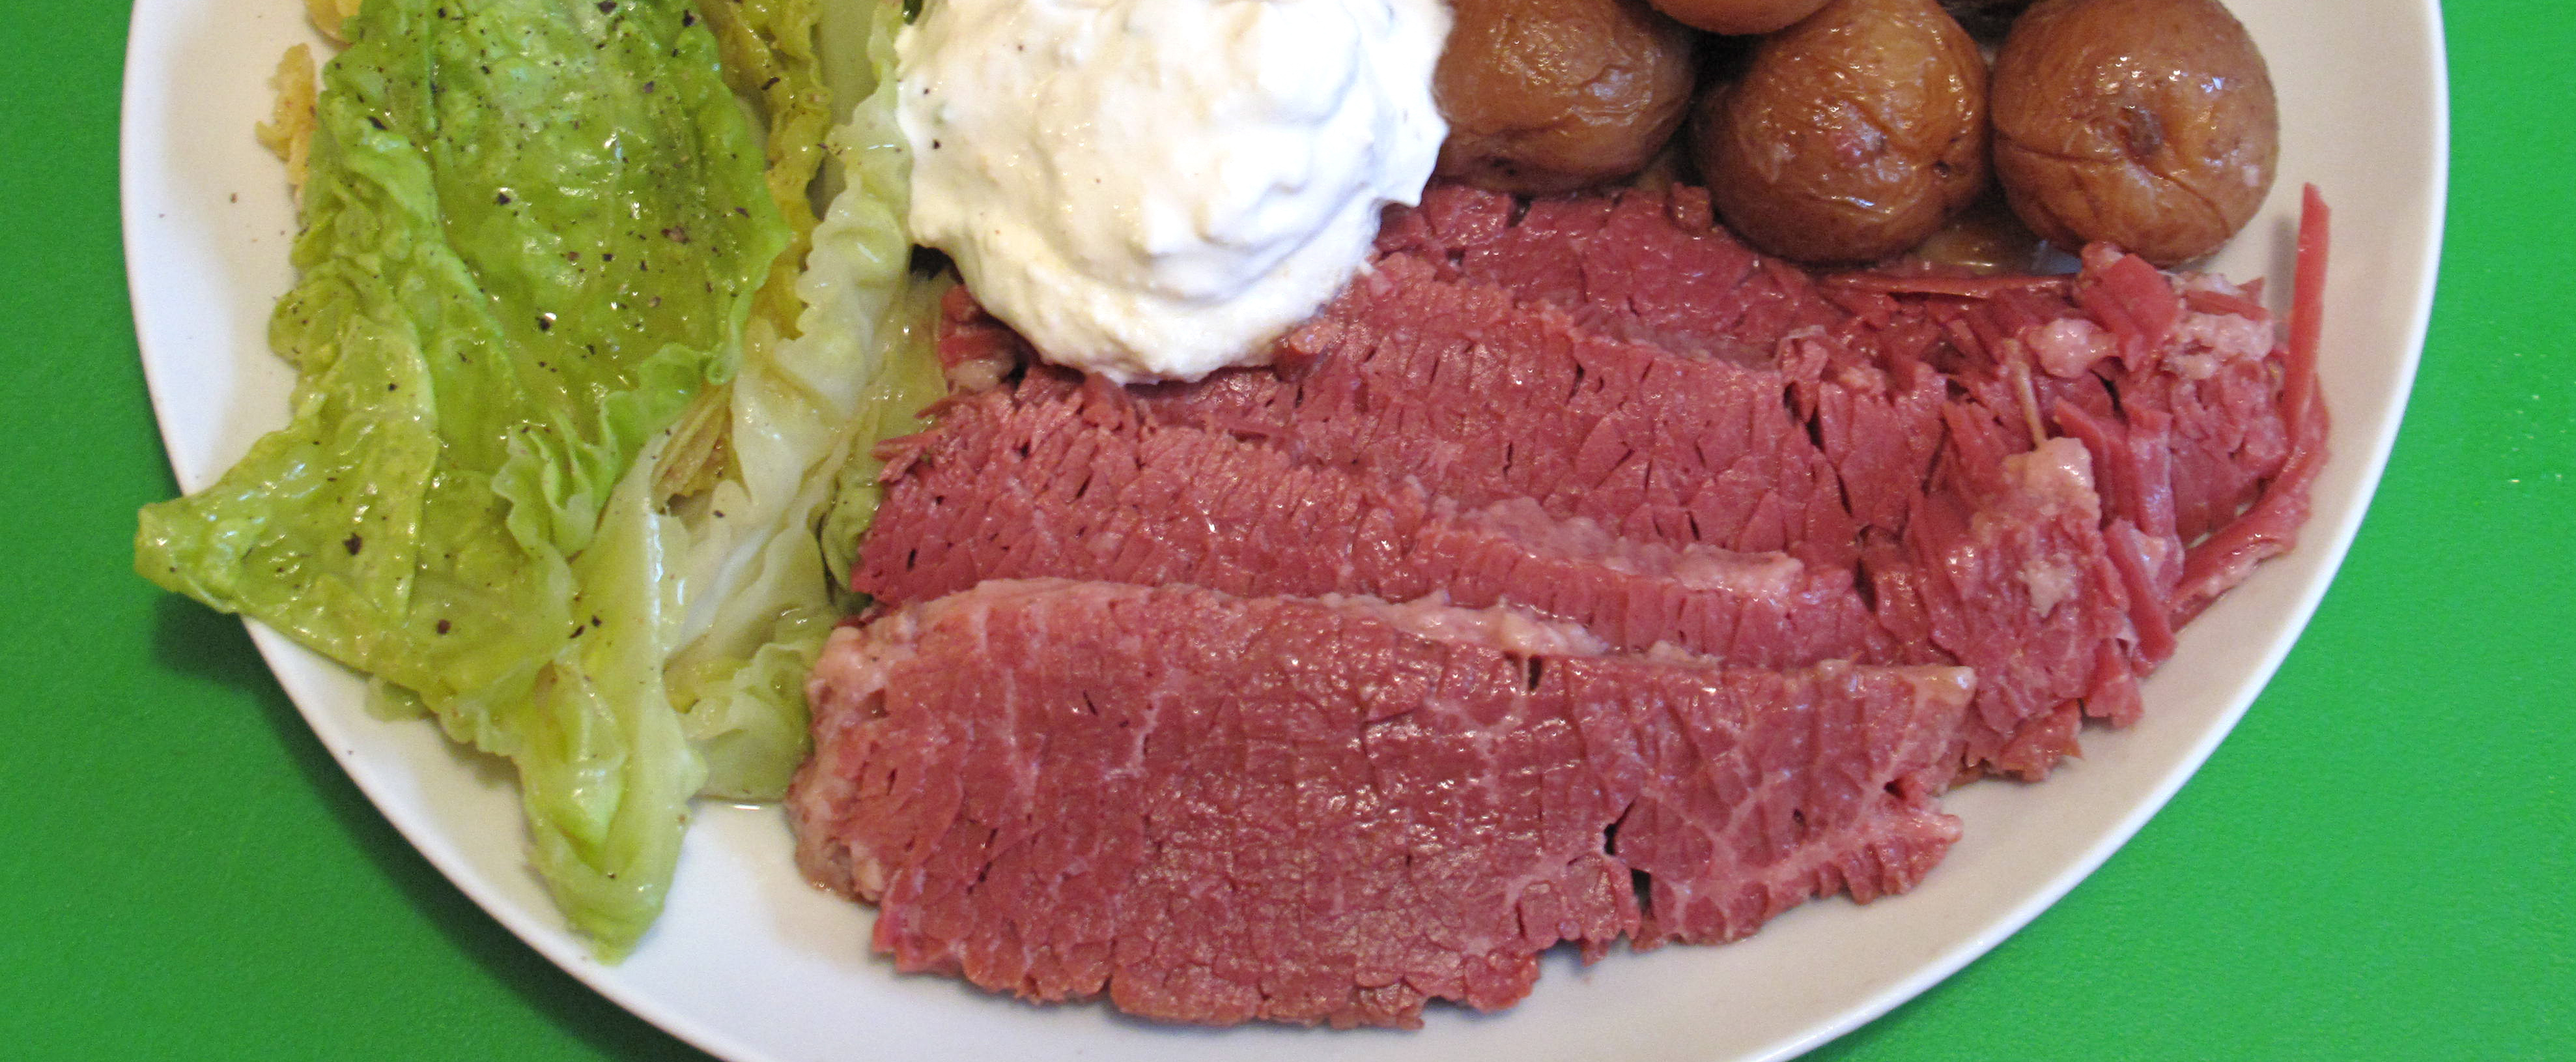 Feast on Slow-Cooker Corned Beef This St. Patrick's Day